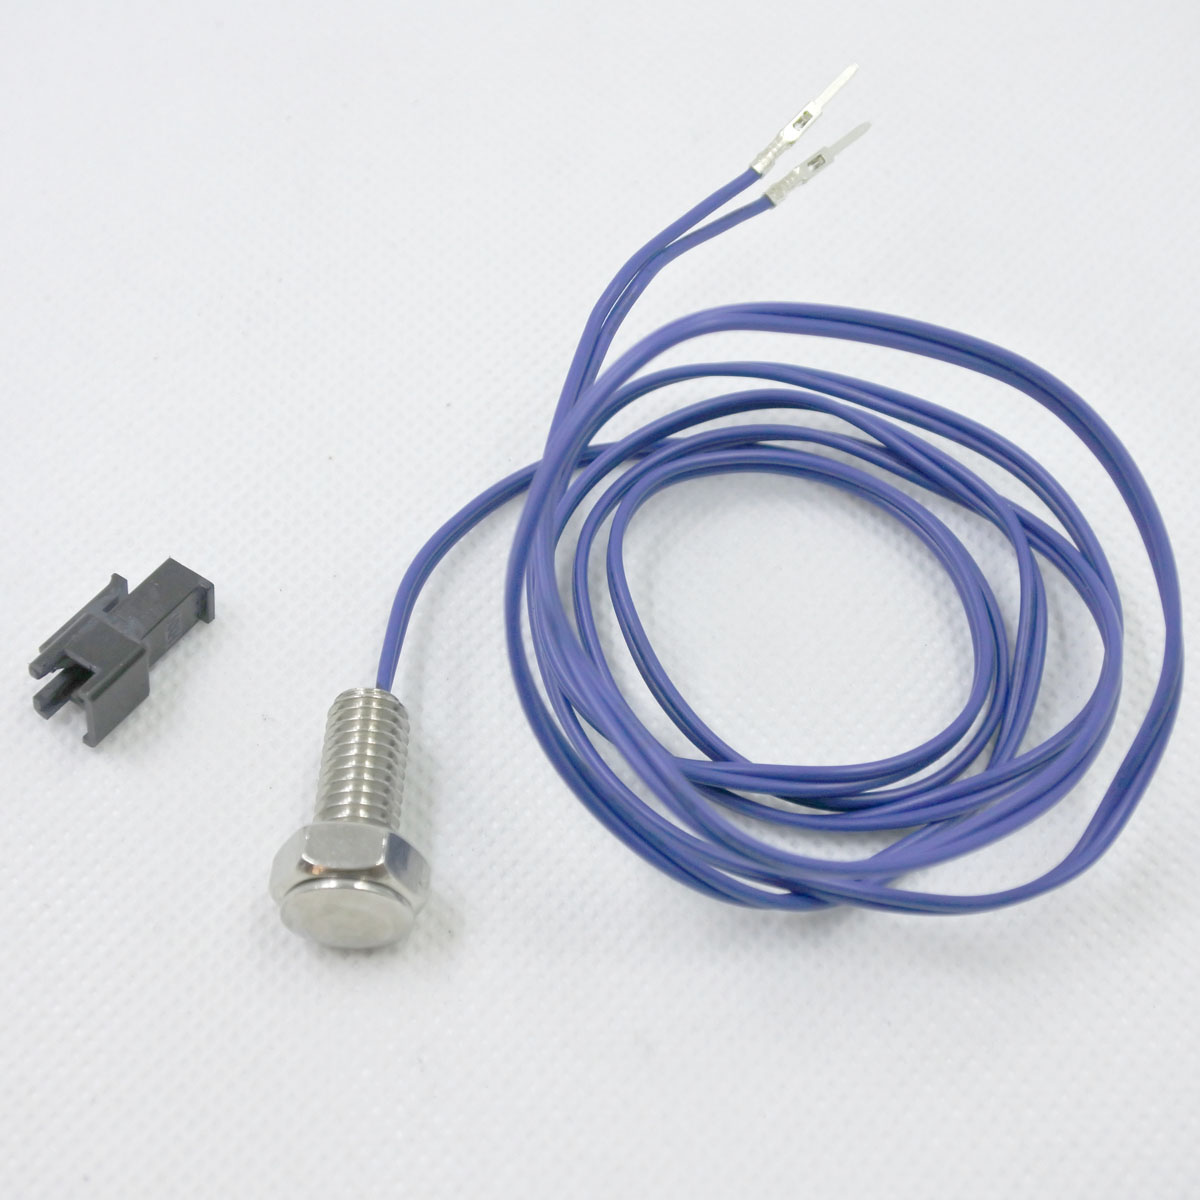 Hot Tub Water Protection Probe,Spa Water Temperature Sensor For Control Pack Of Winer, JNJ KL8-2 TCP8-2 KL8-3 TCP8-3